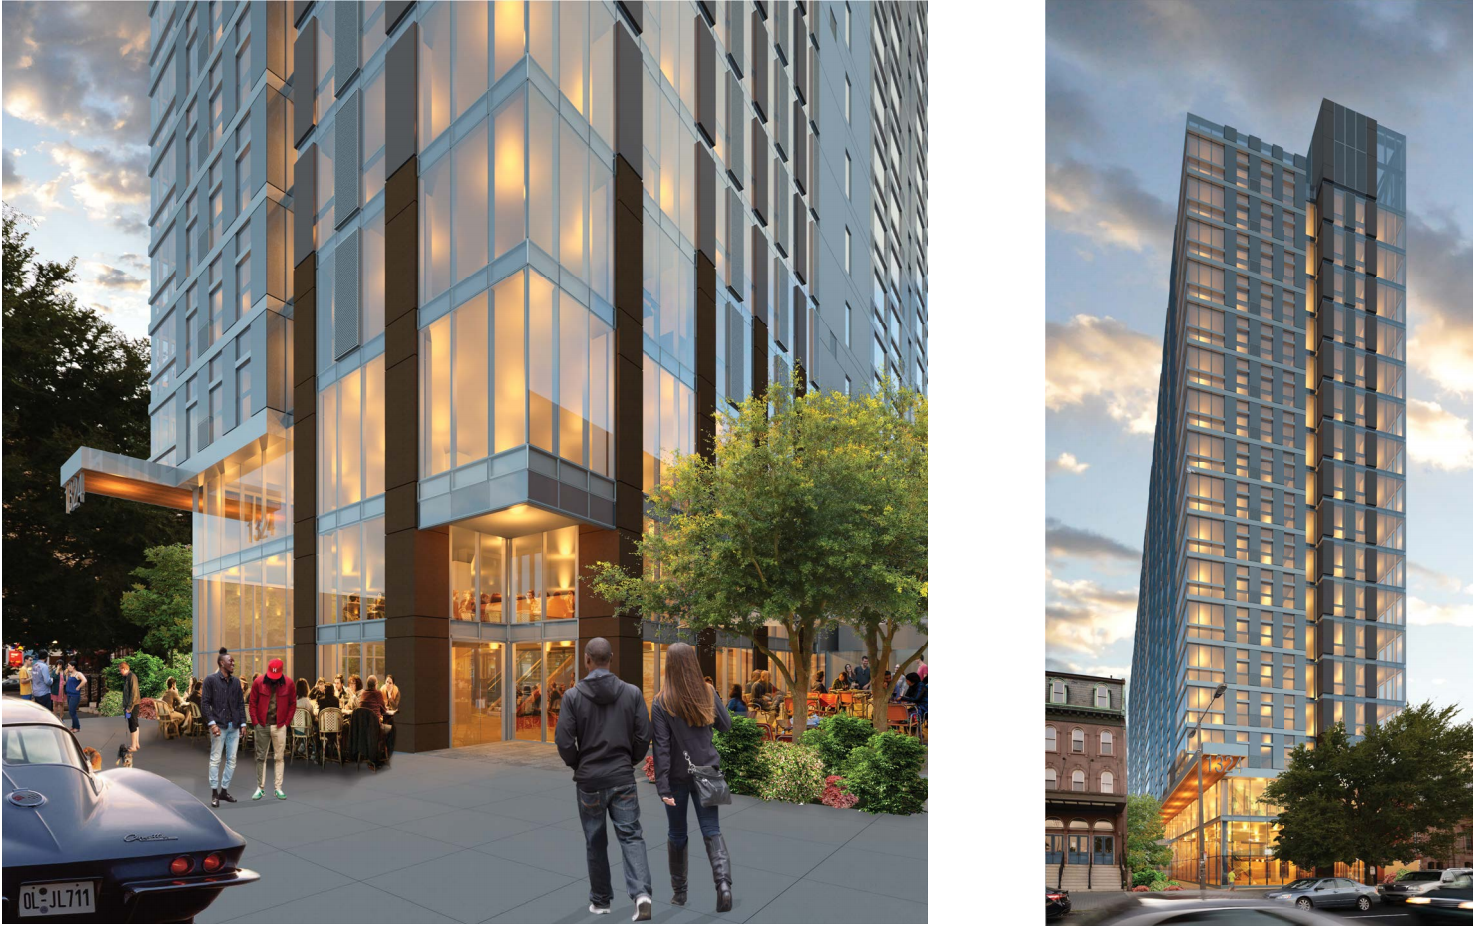 1324 N. Broad: Rendering from Broad Street | Cecil Baker + Partners, Nov. 2016 CDR presentation